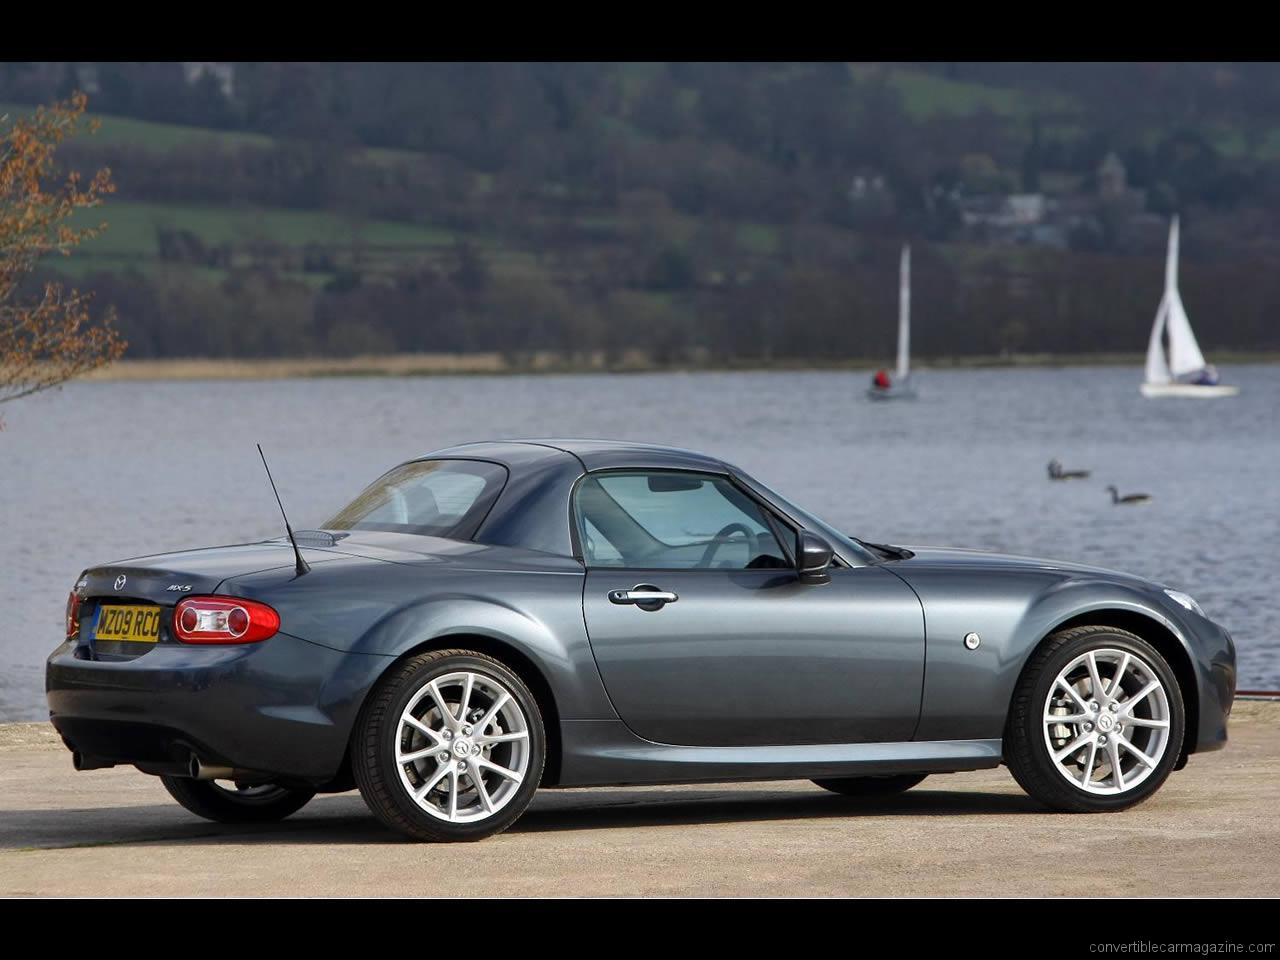 2006 Mazda MX-5 Roadster Coupe Convertible 2-door